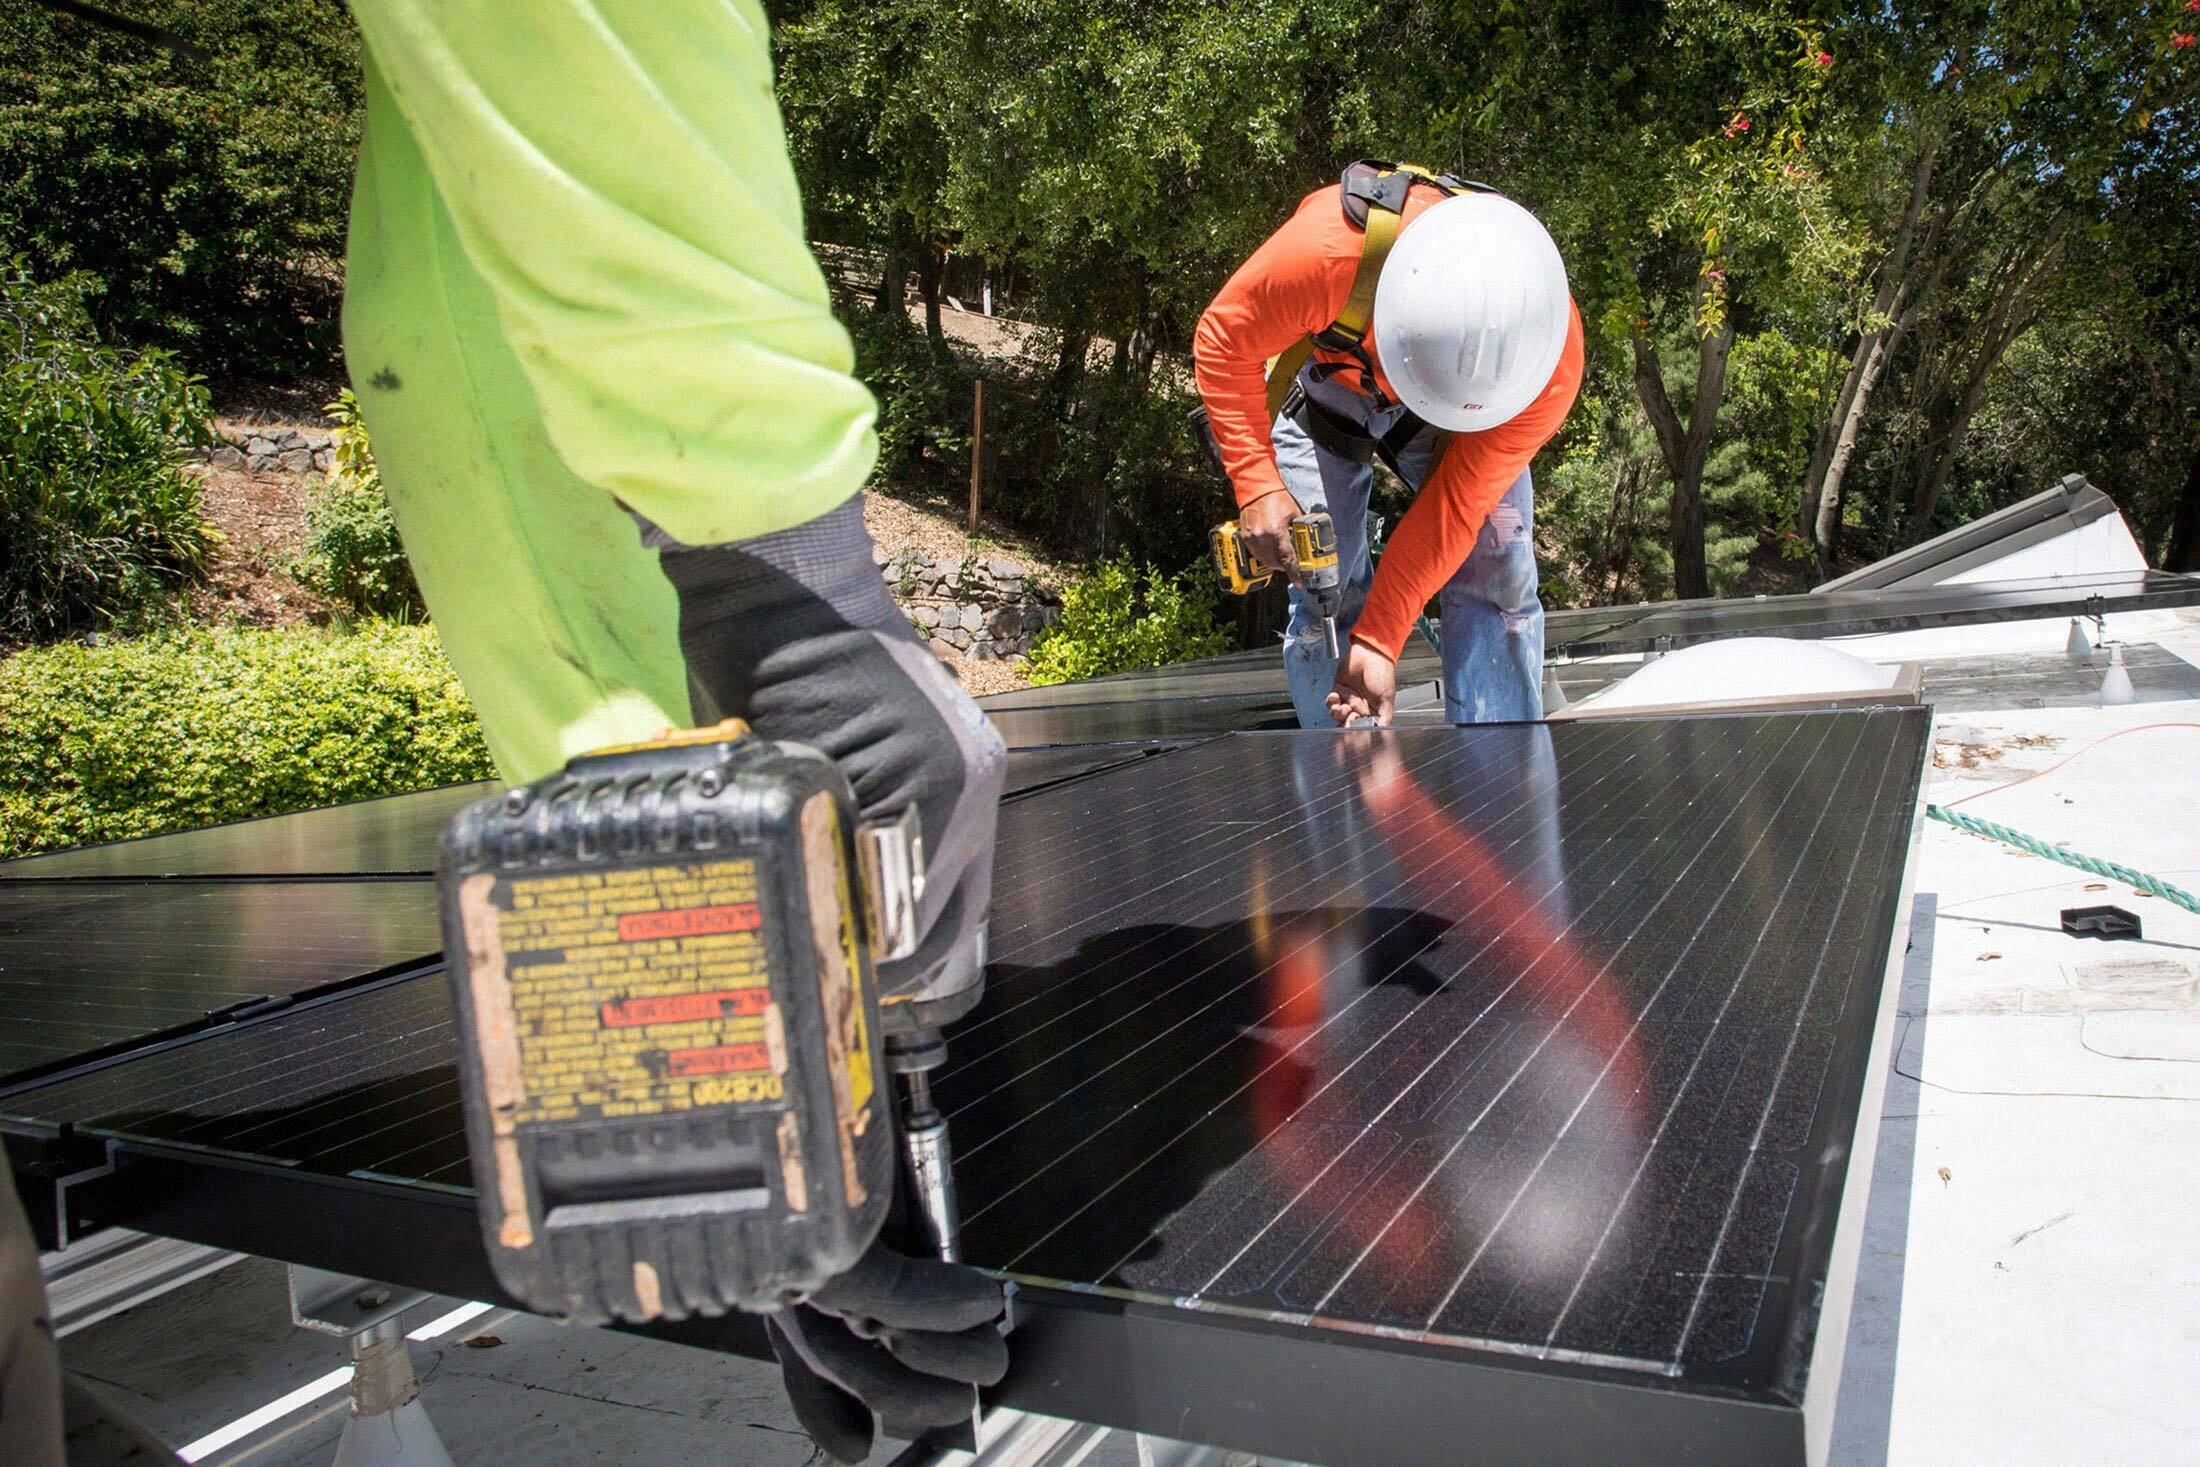 Petersen Dean Inc. employees install solar panels on the roof of a home in Lafayette, Calif., on May 15, 2018.